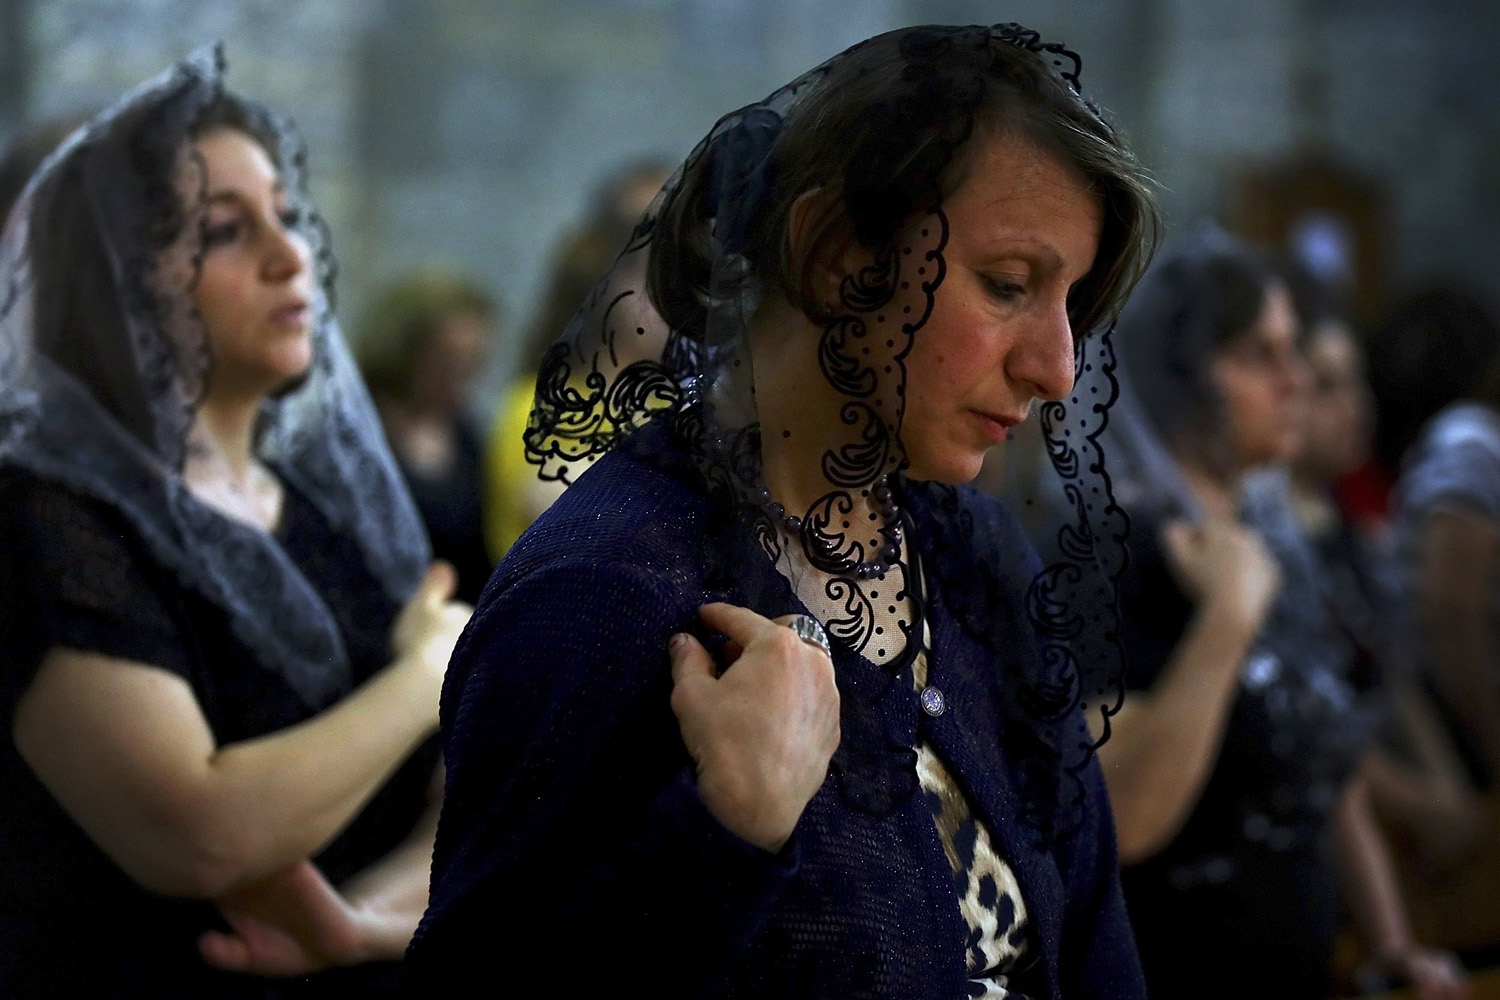 Jun. 15, 2014. Iraqis attend Mass at the Chaldean Church of the Virgin Mary of the Harvest, in Alqosh, set in the seventh century Saint Hormoz monastery built into a hill overlooking Alqosh, north of Mosul.